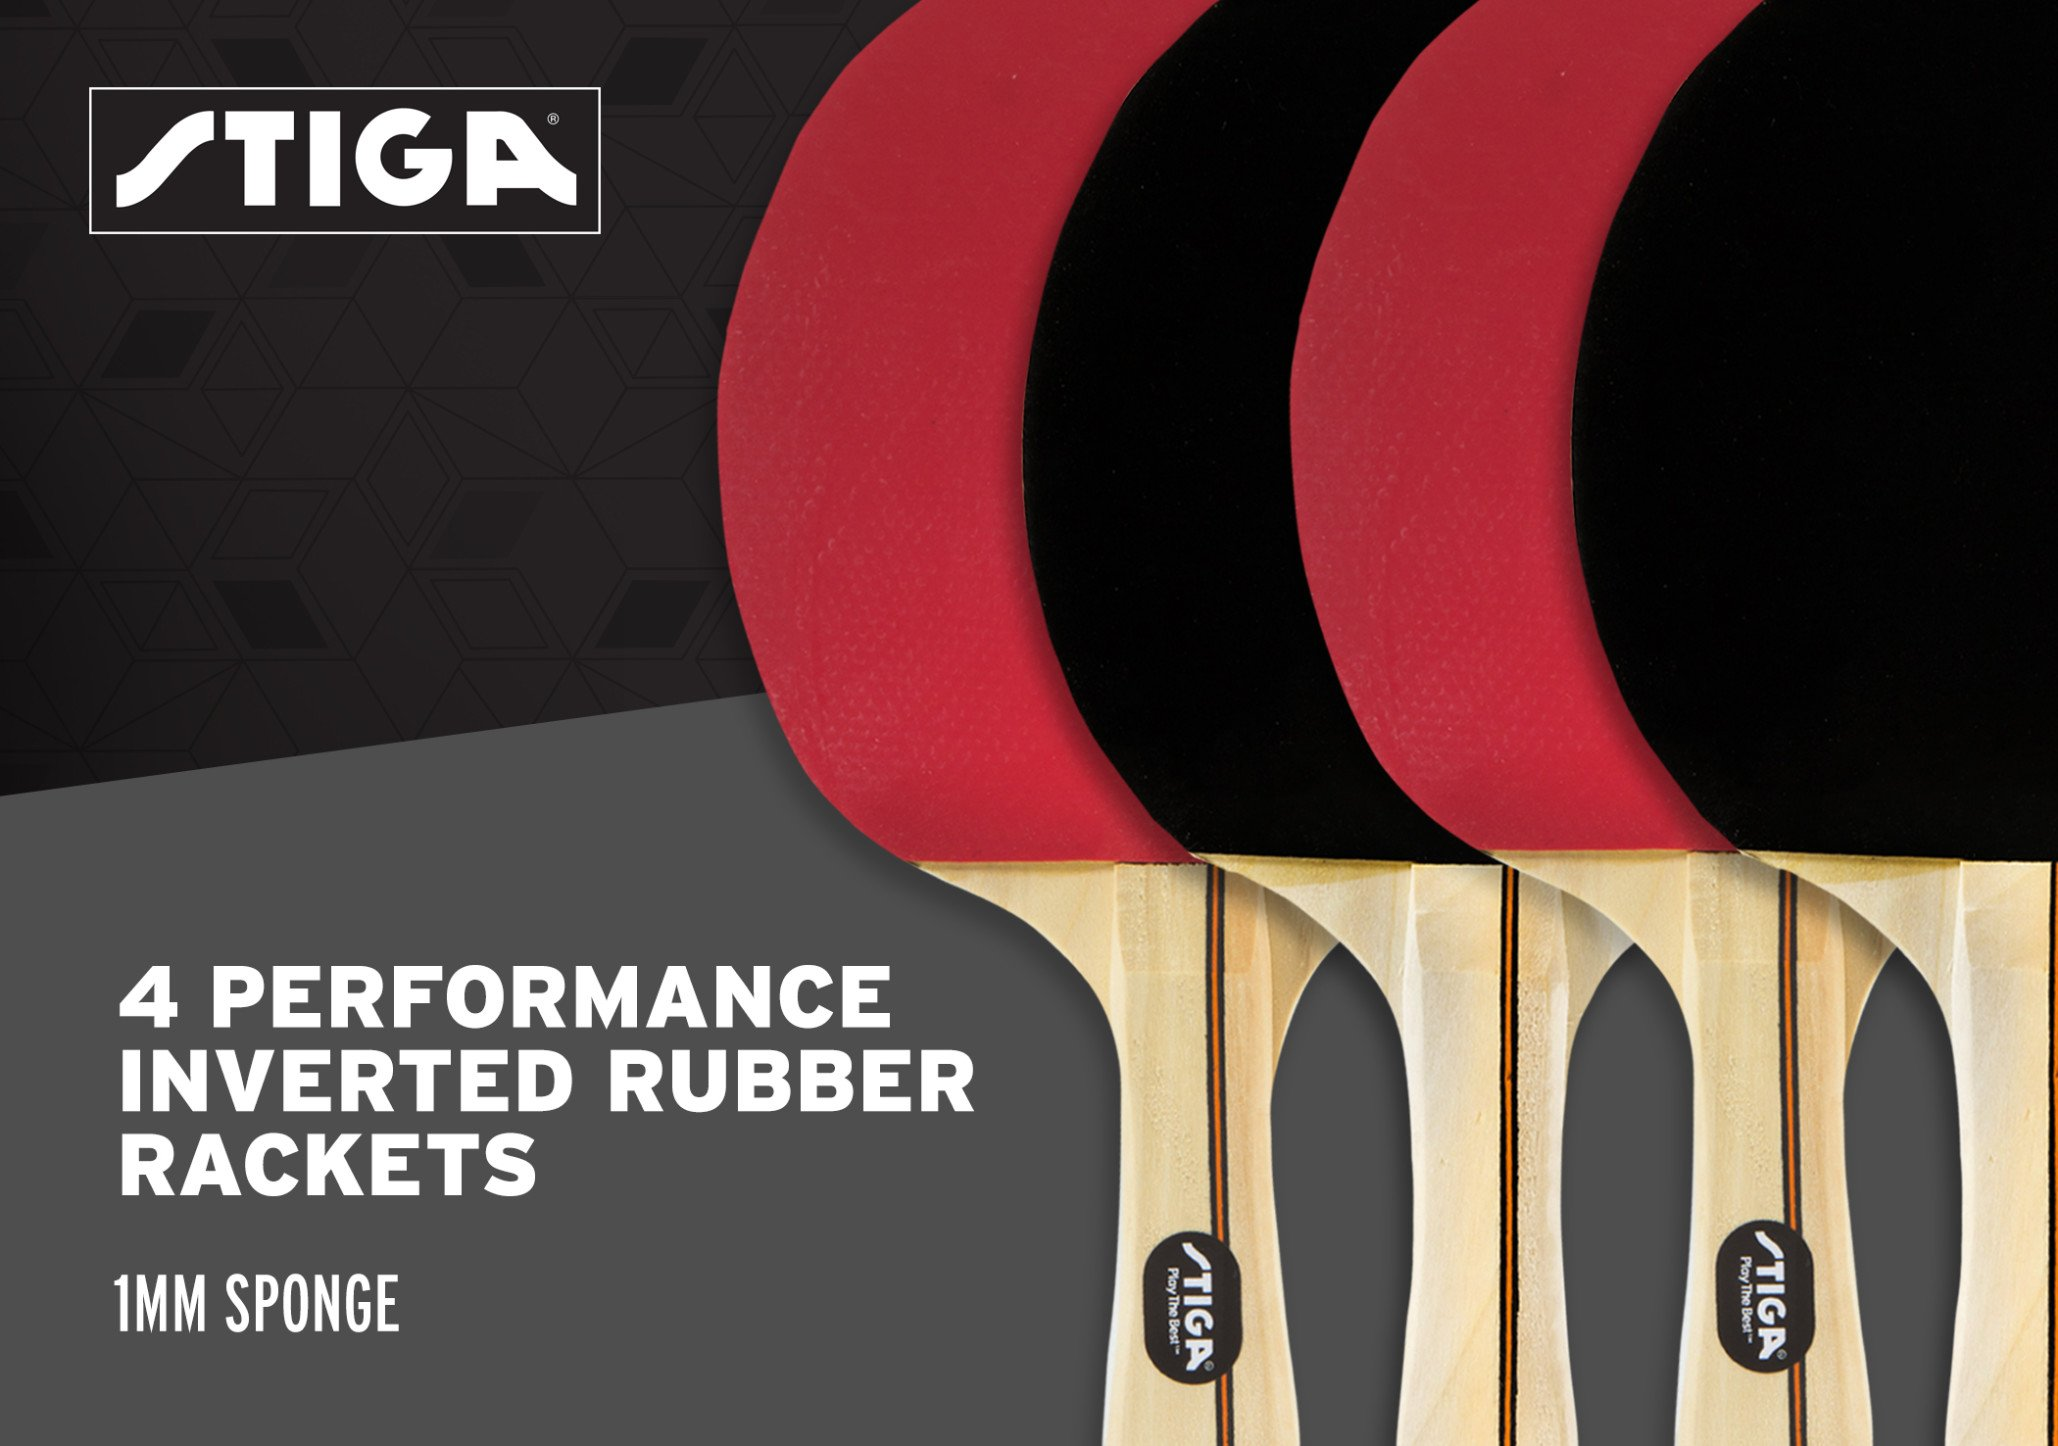 STIGA Performance 4-Player Table Tennis Racket Set with Inverted Rubber for Increased Ball Control and Added Spin by STIGA (Image #4)